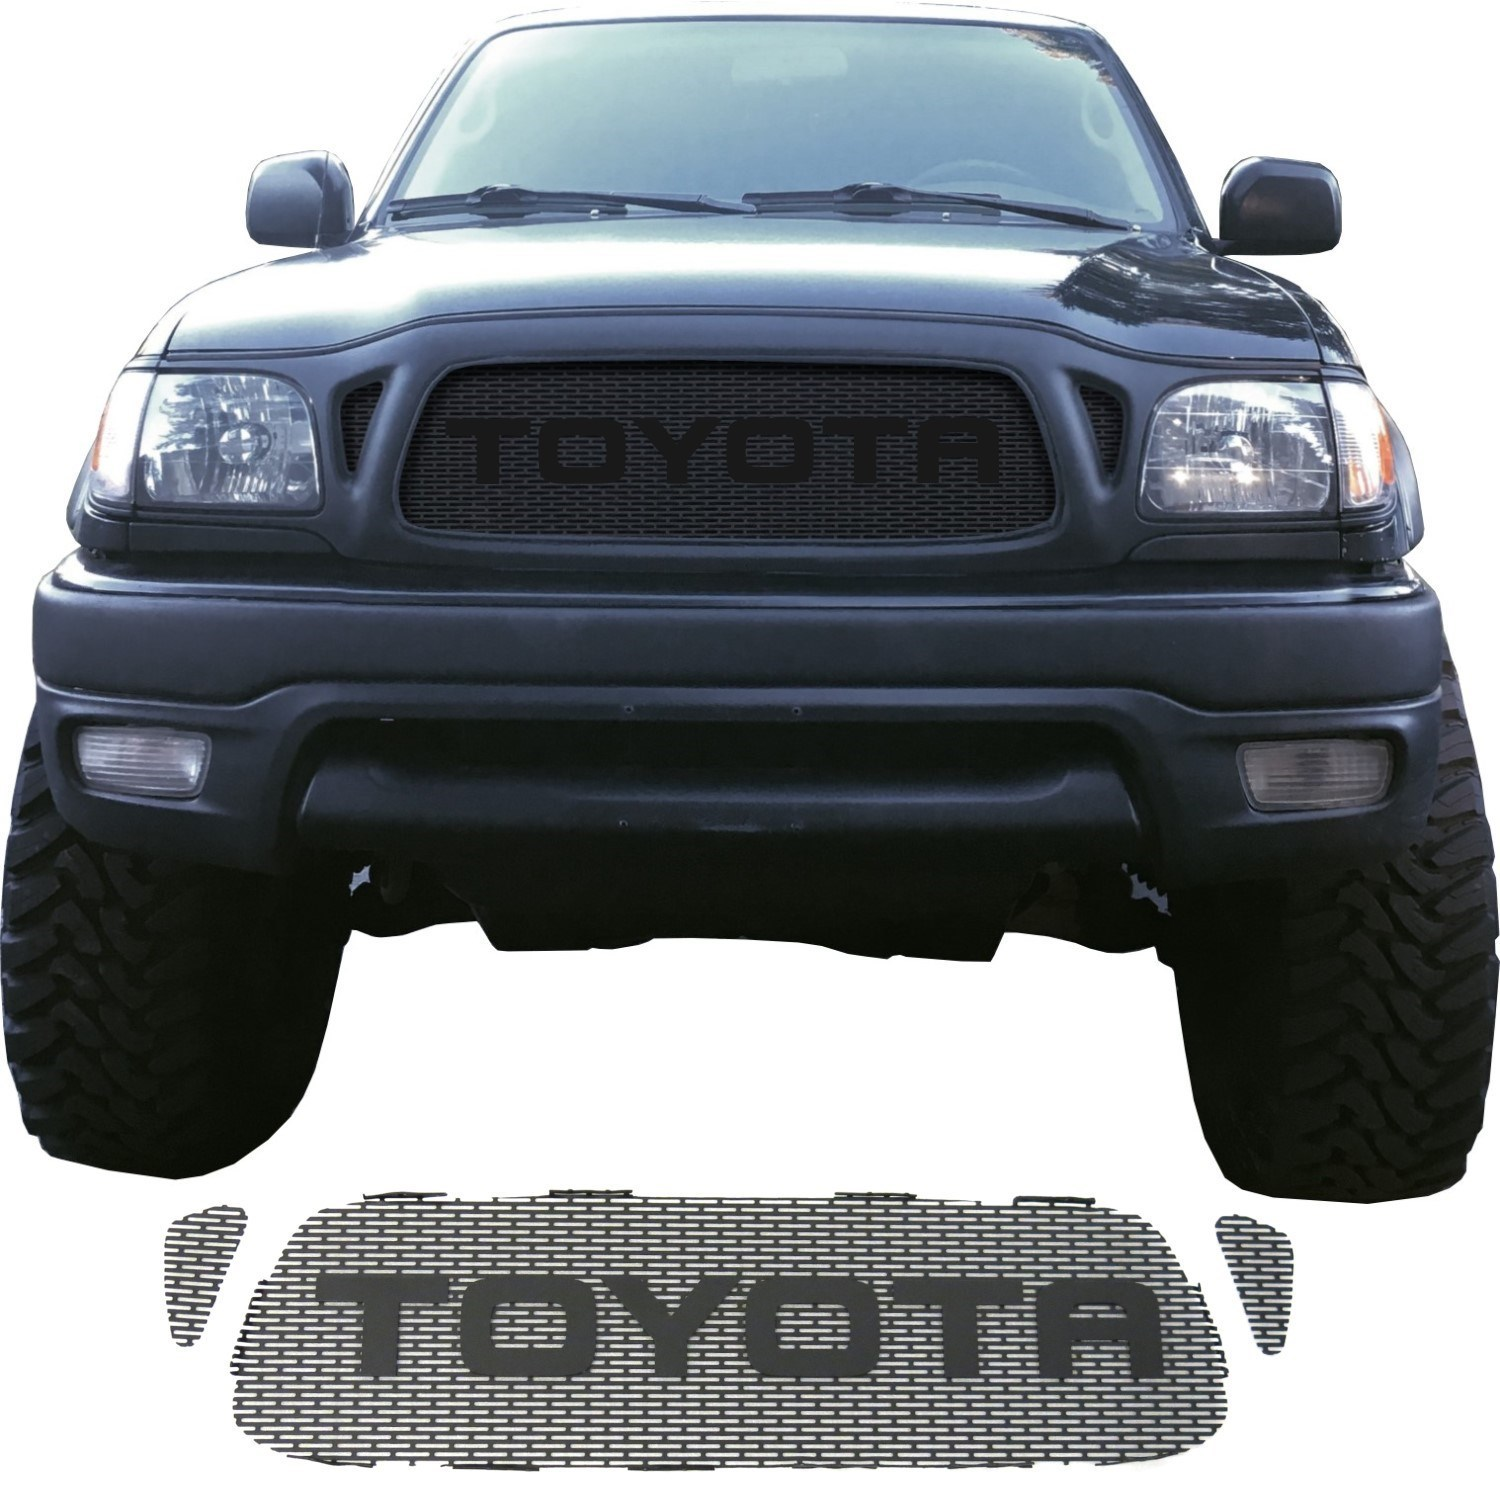 2001-04 Toyota Tacoma Grill Mesh With Rounded Letters